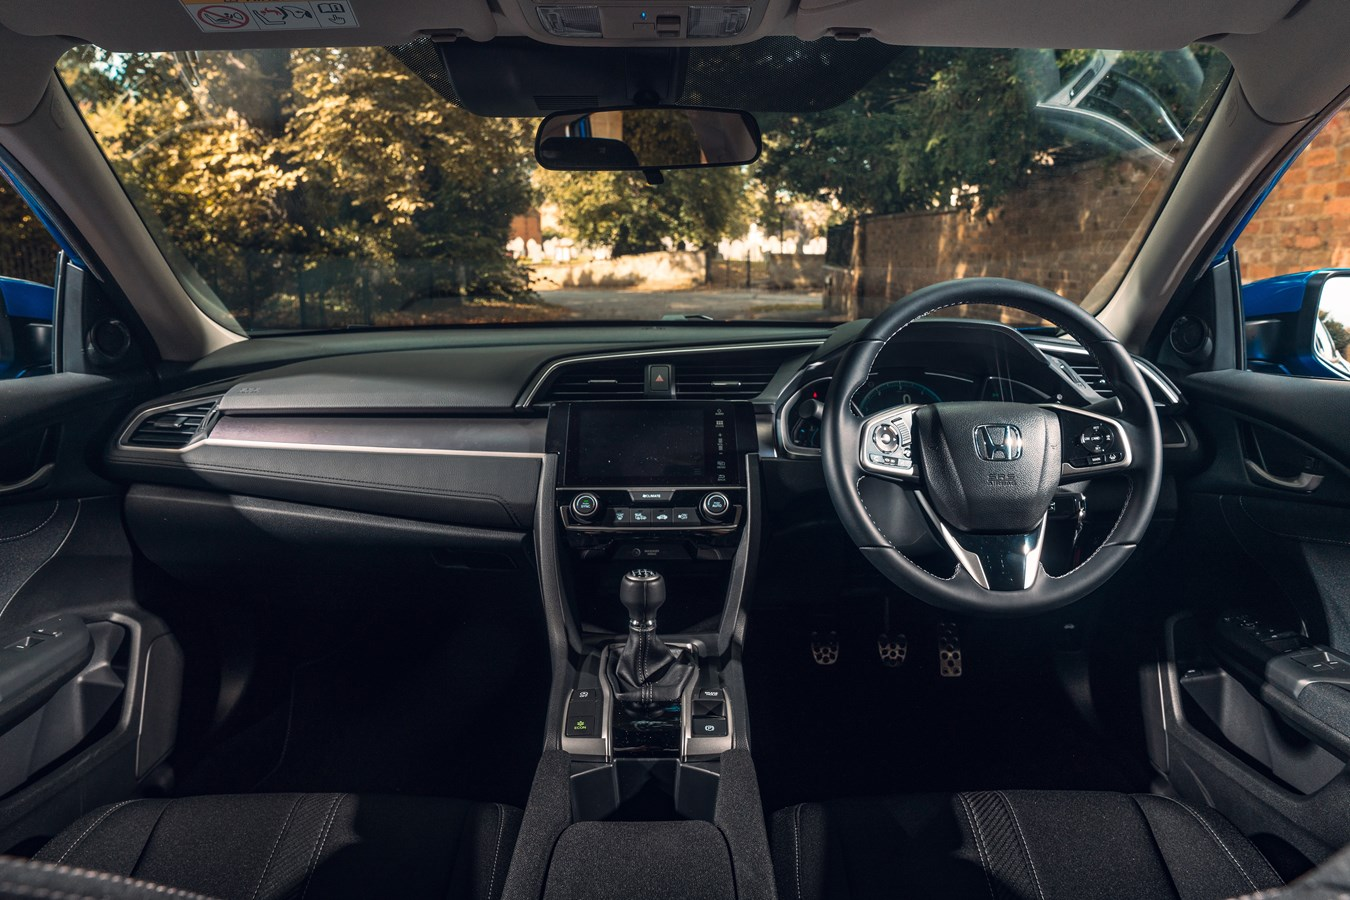 The interior of the Civic is ergonomically laid out